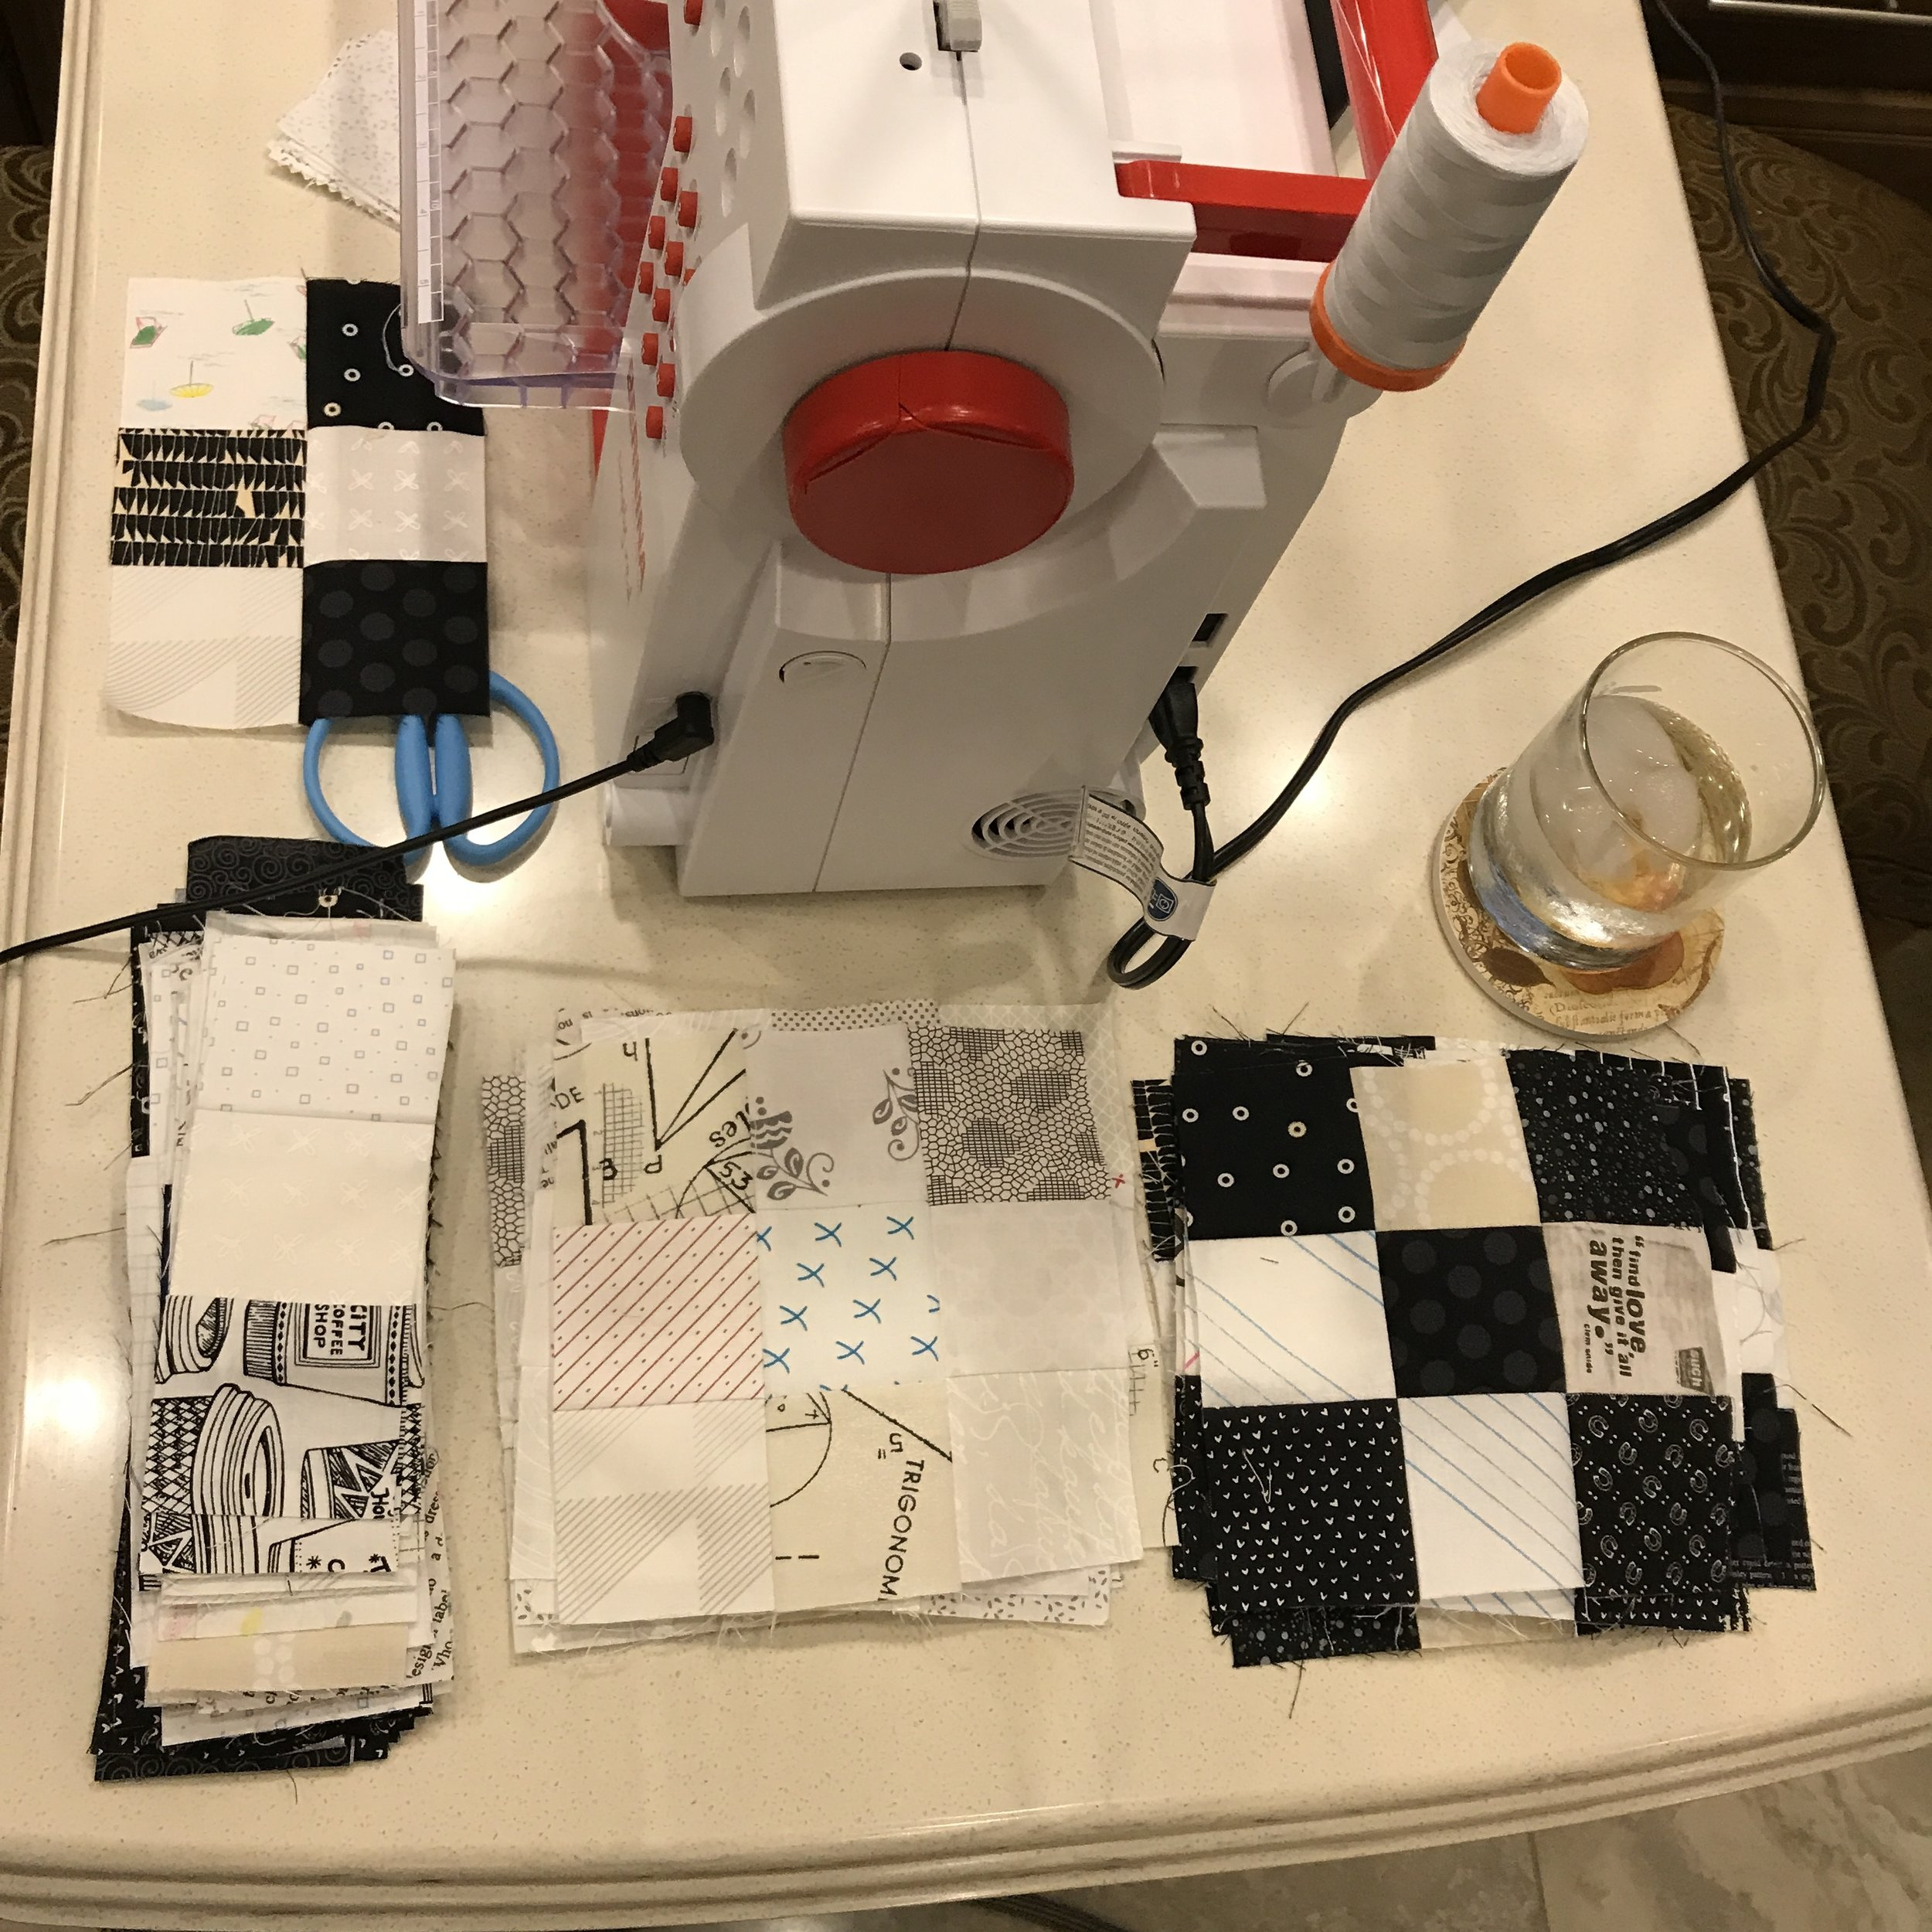 Sewing on my little Bernina when camping...